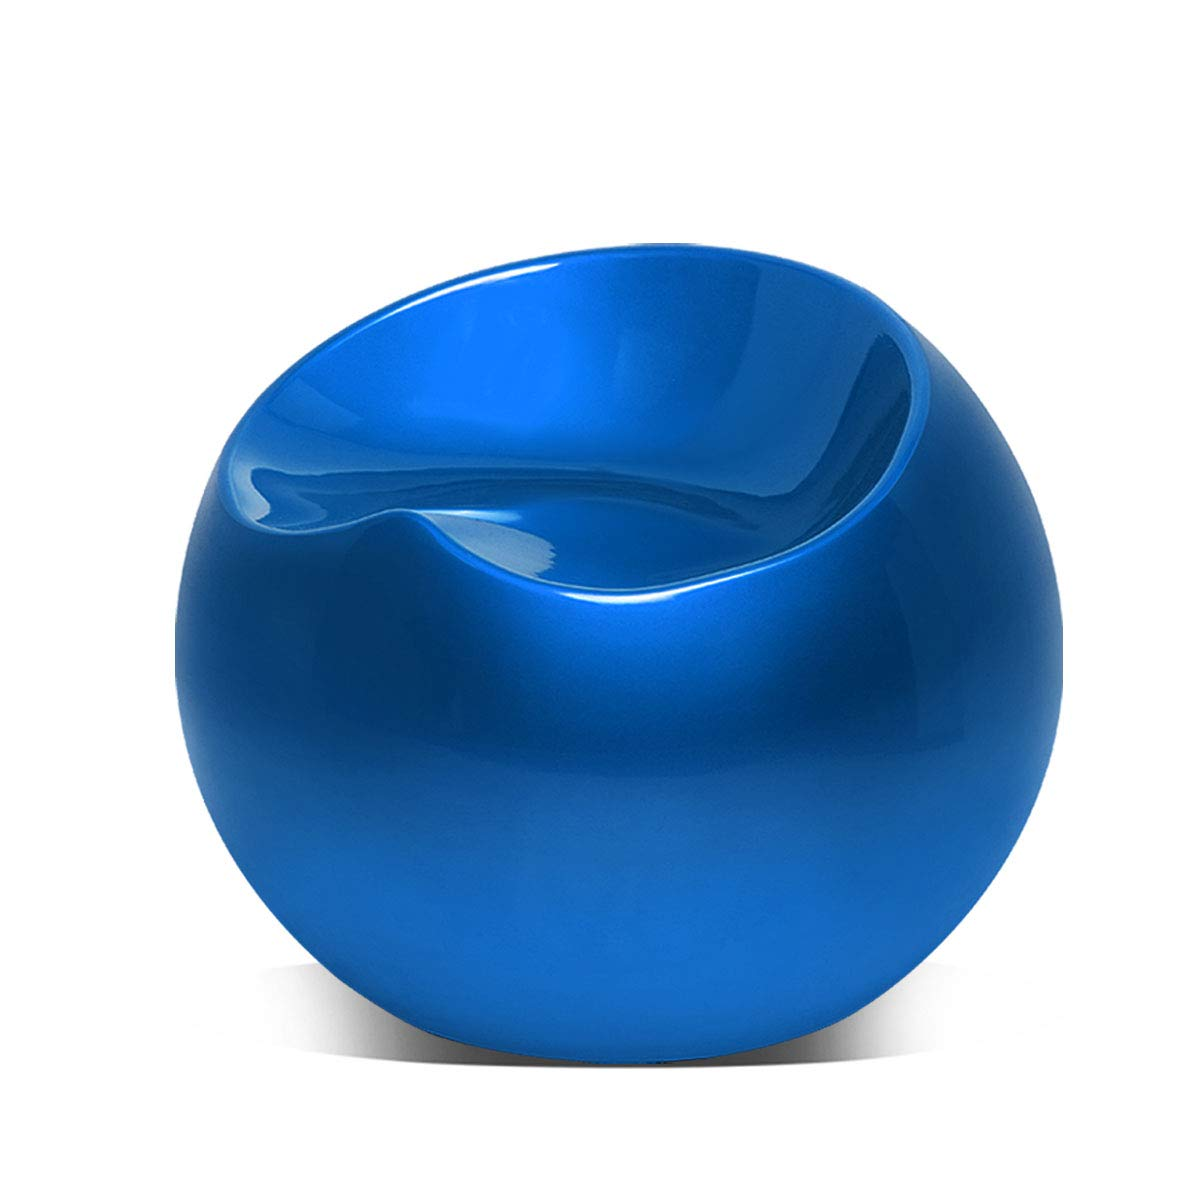 Magshion Modern Living Room Patio Night Club Bar Cocktail Guest Backless Ball Round Lounge Fiberglass Stool Pouf Chairs, Blue